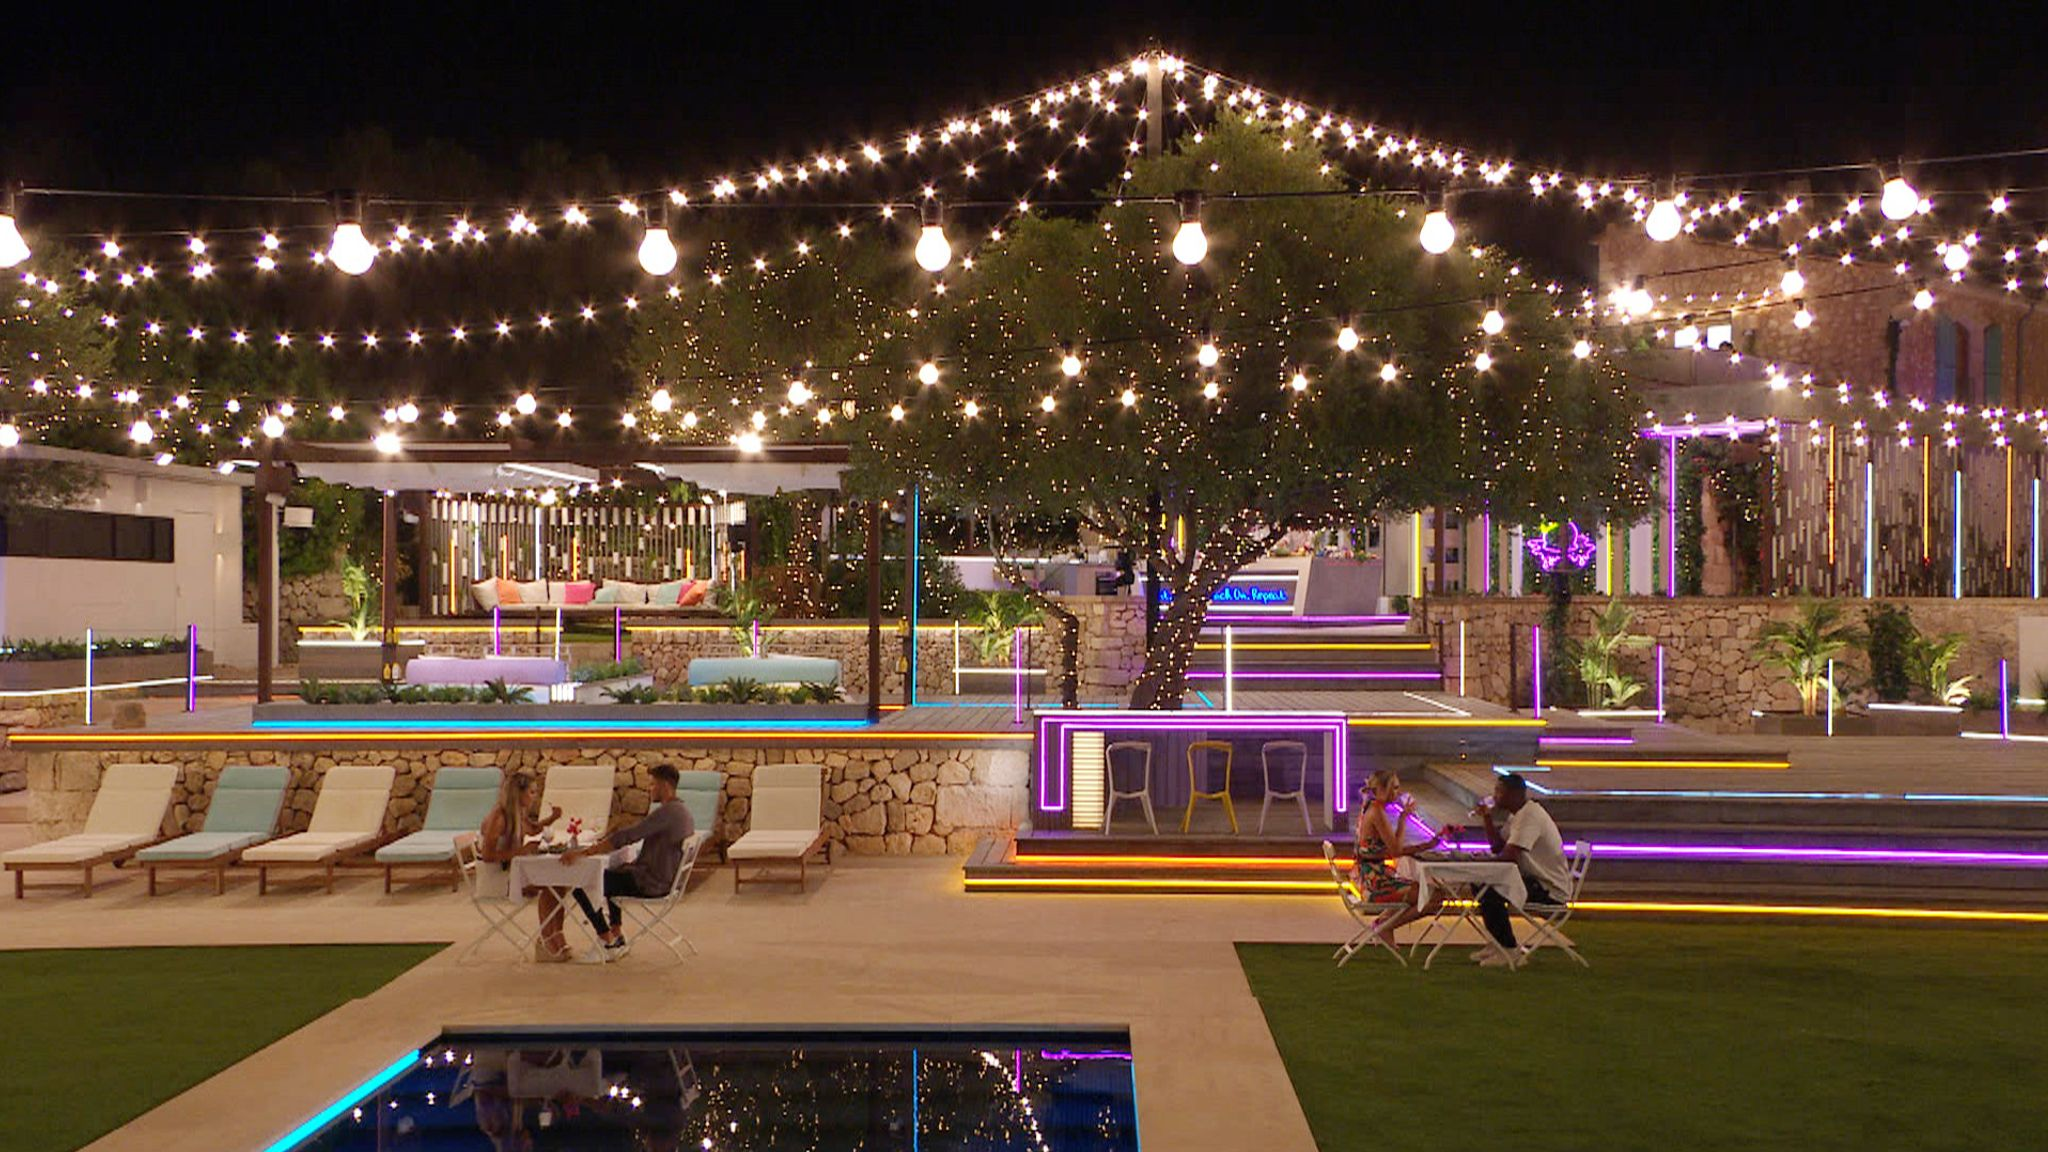 Love Island intruder removed from villa in Majorca after breaching security  overnight | Ents & Arts News | Sky News